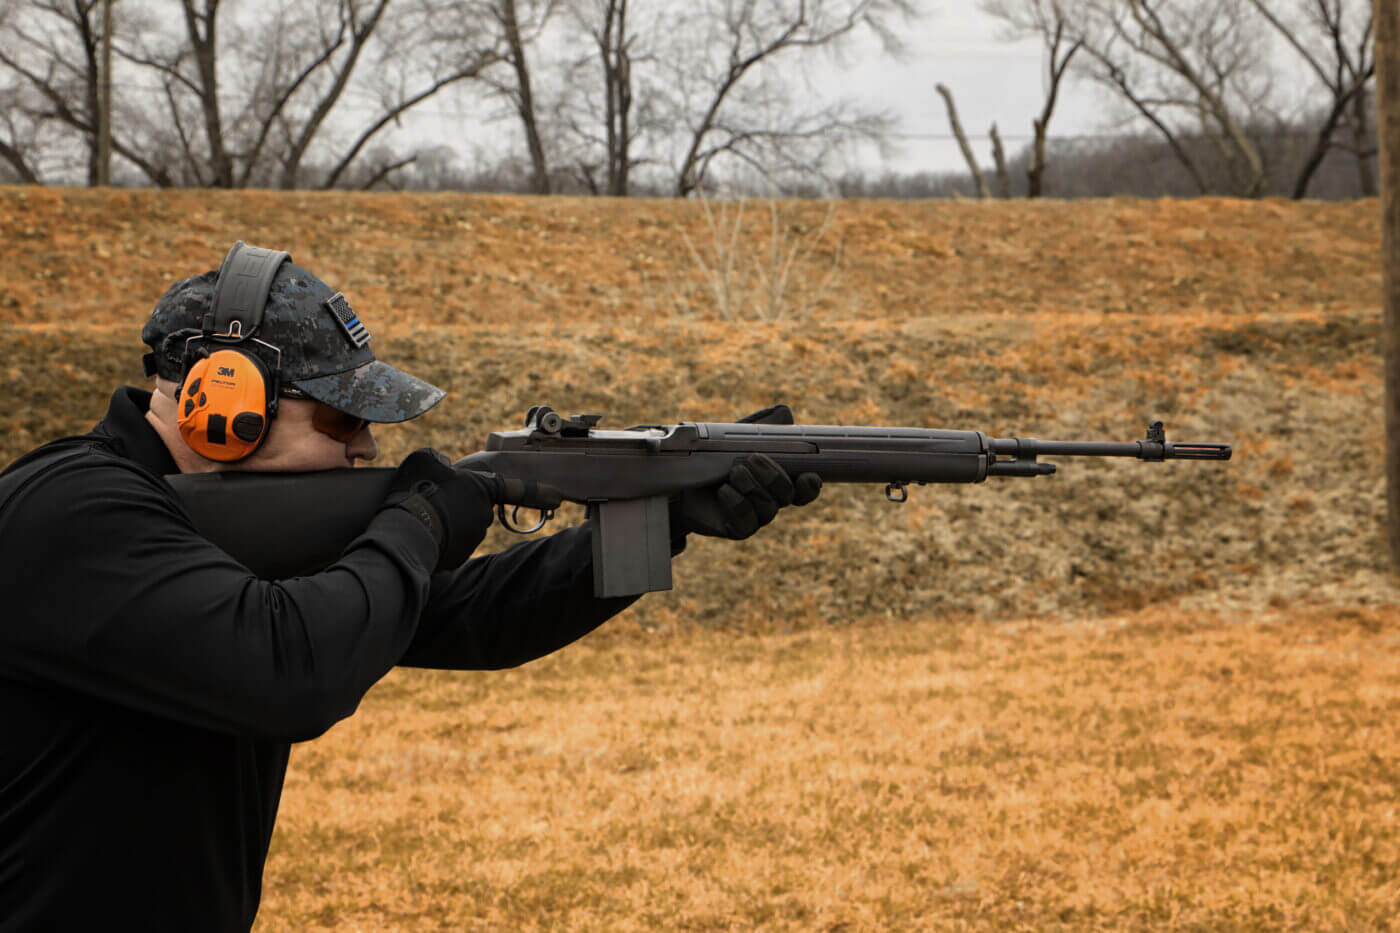 Springfield Armory M1A Loaded shot by a man in the field